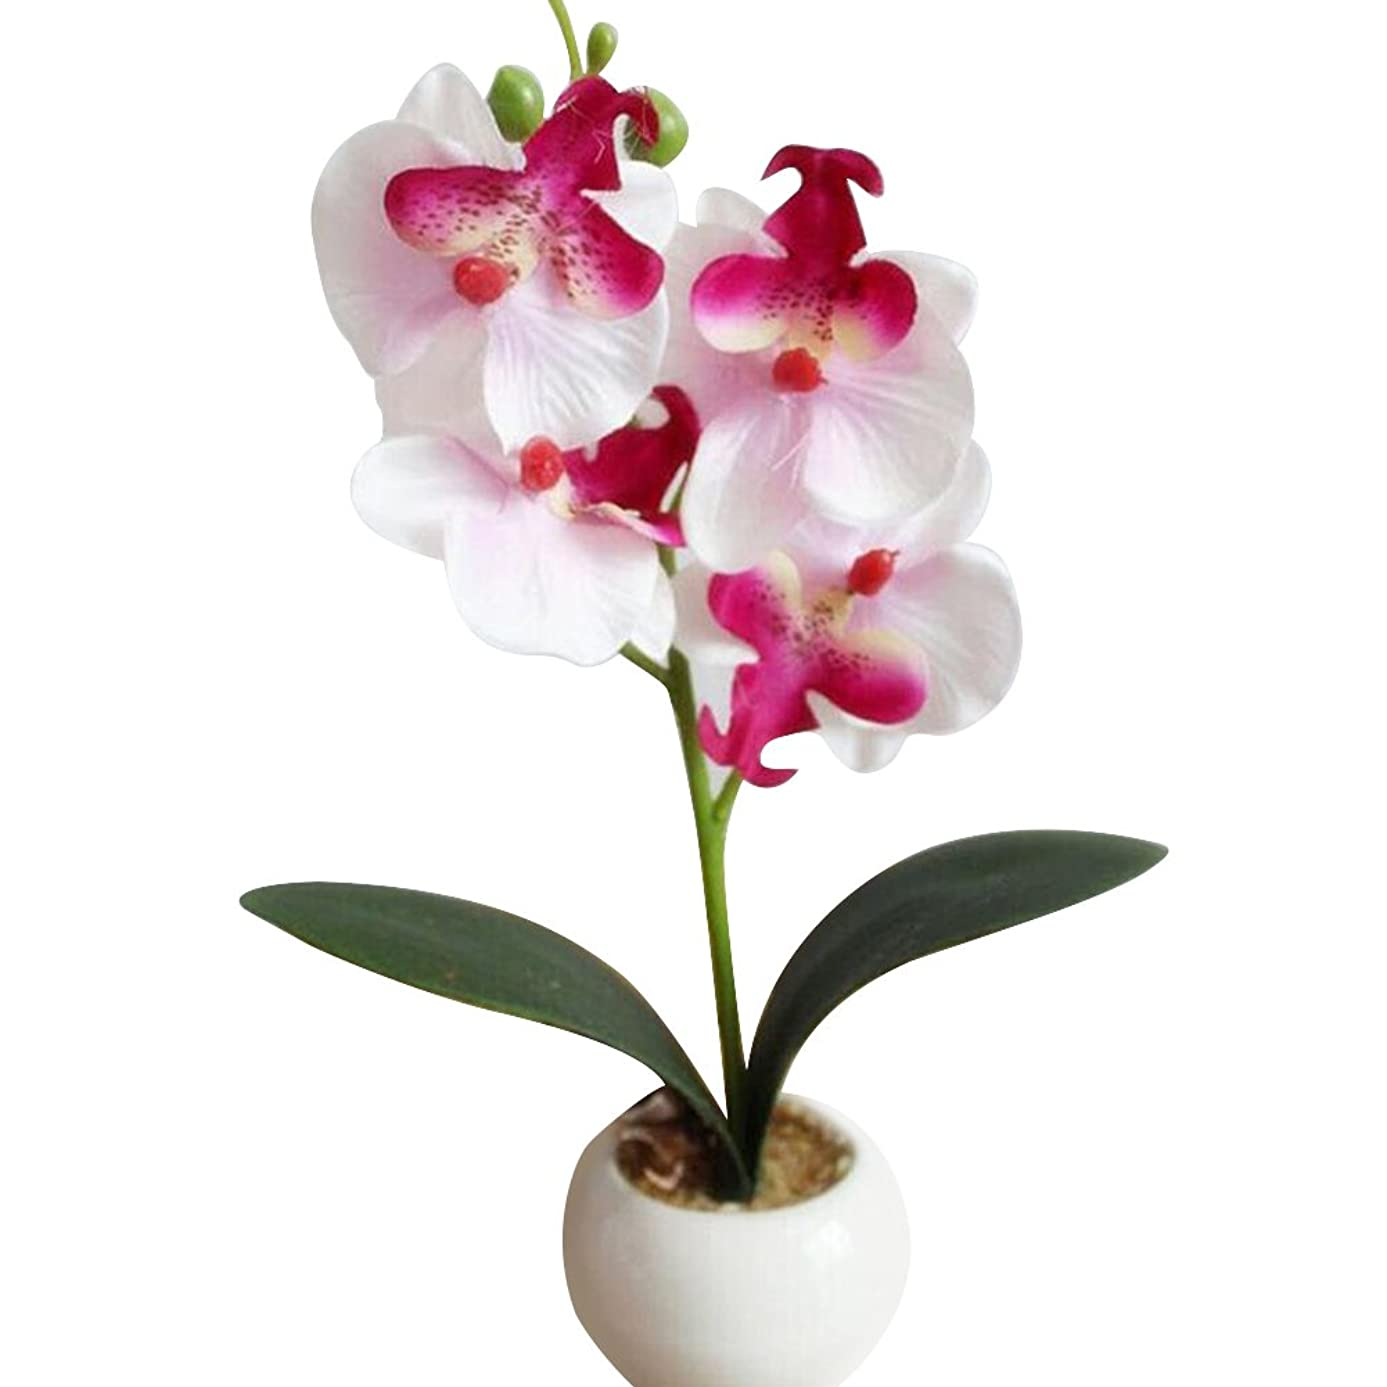 WskLinft Four Head Butterfly Orchid Meaty Plant Bonsai Artificial Flower Home Decoration - White